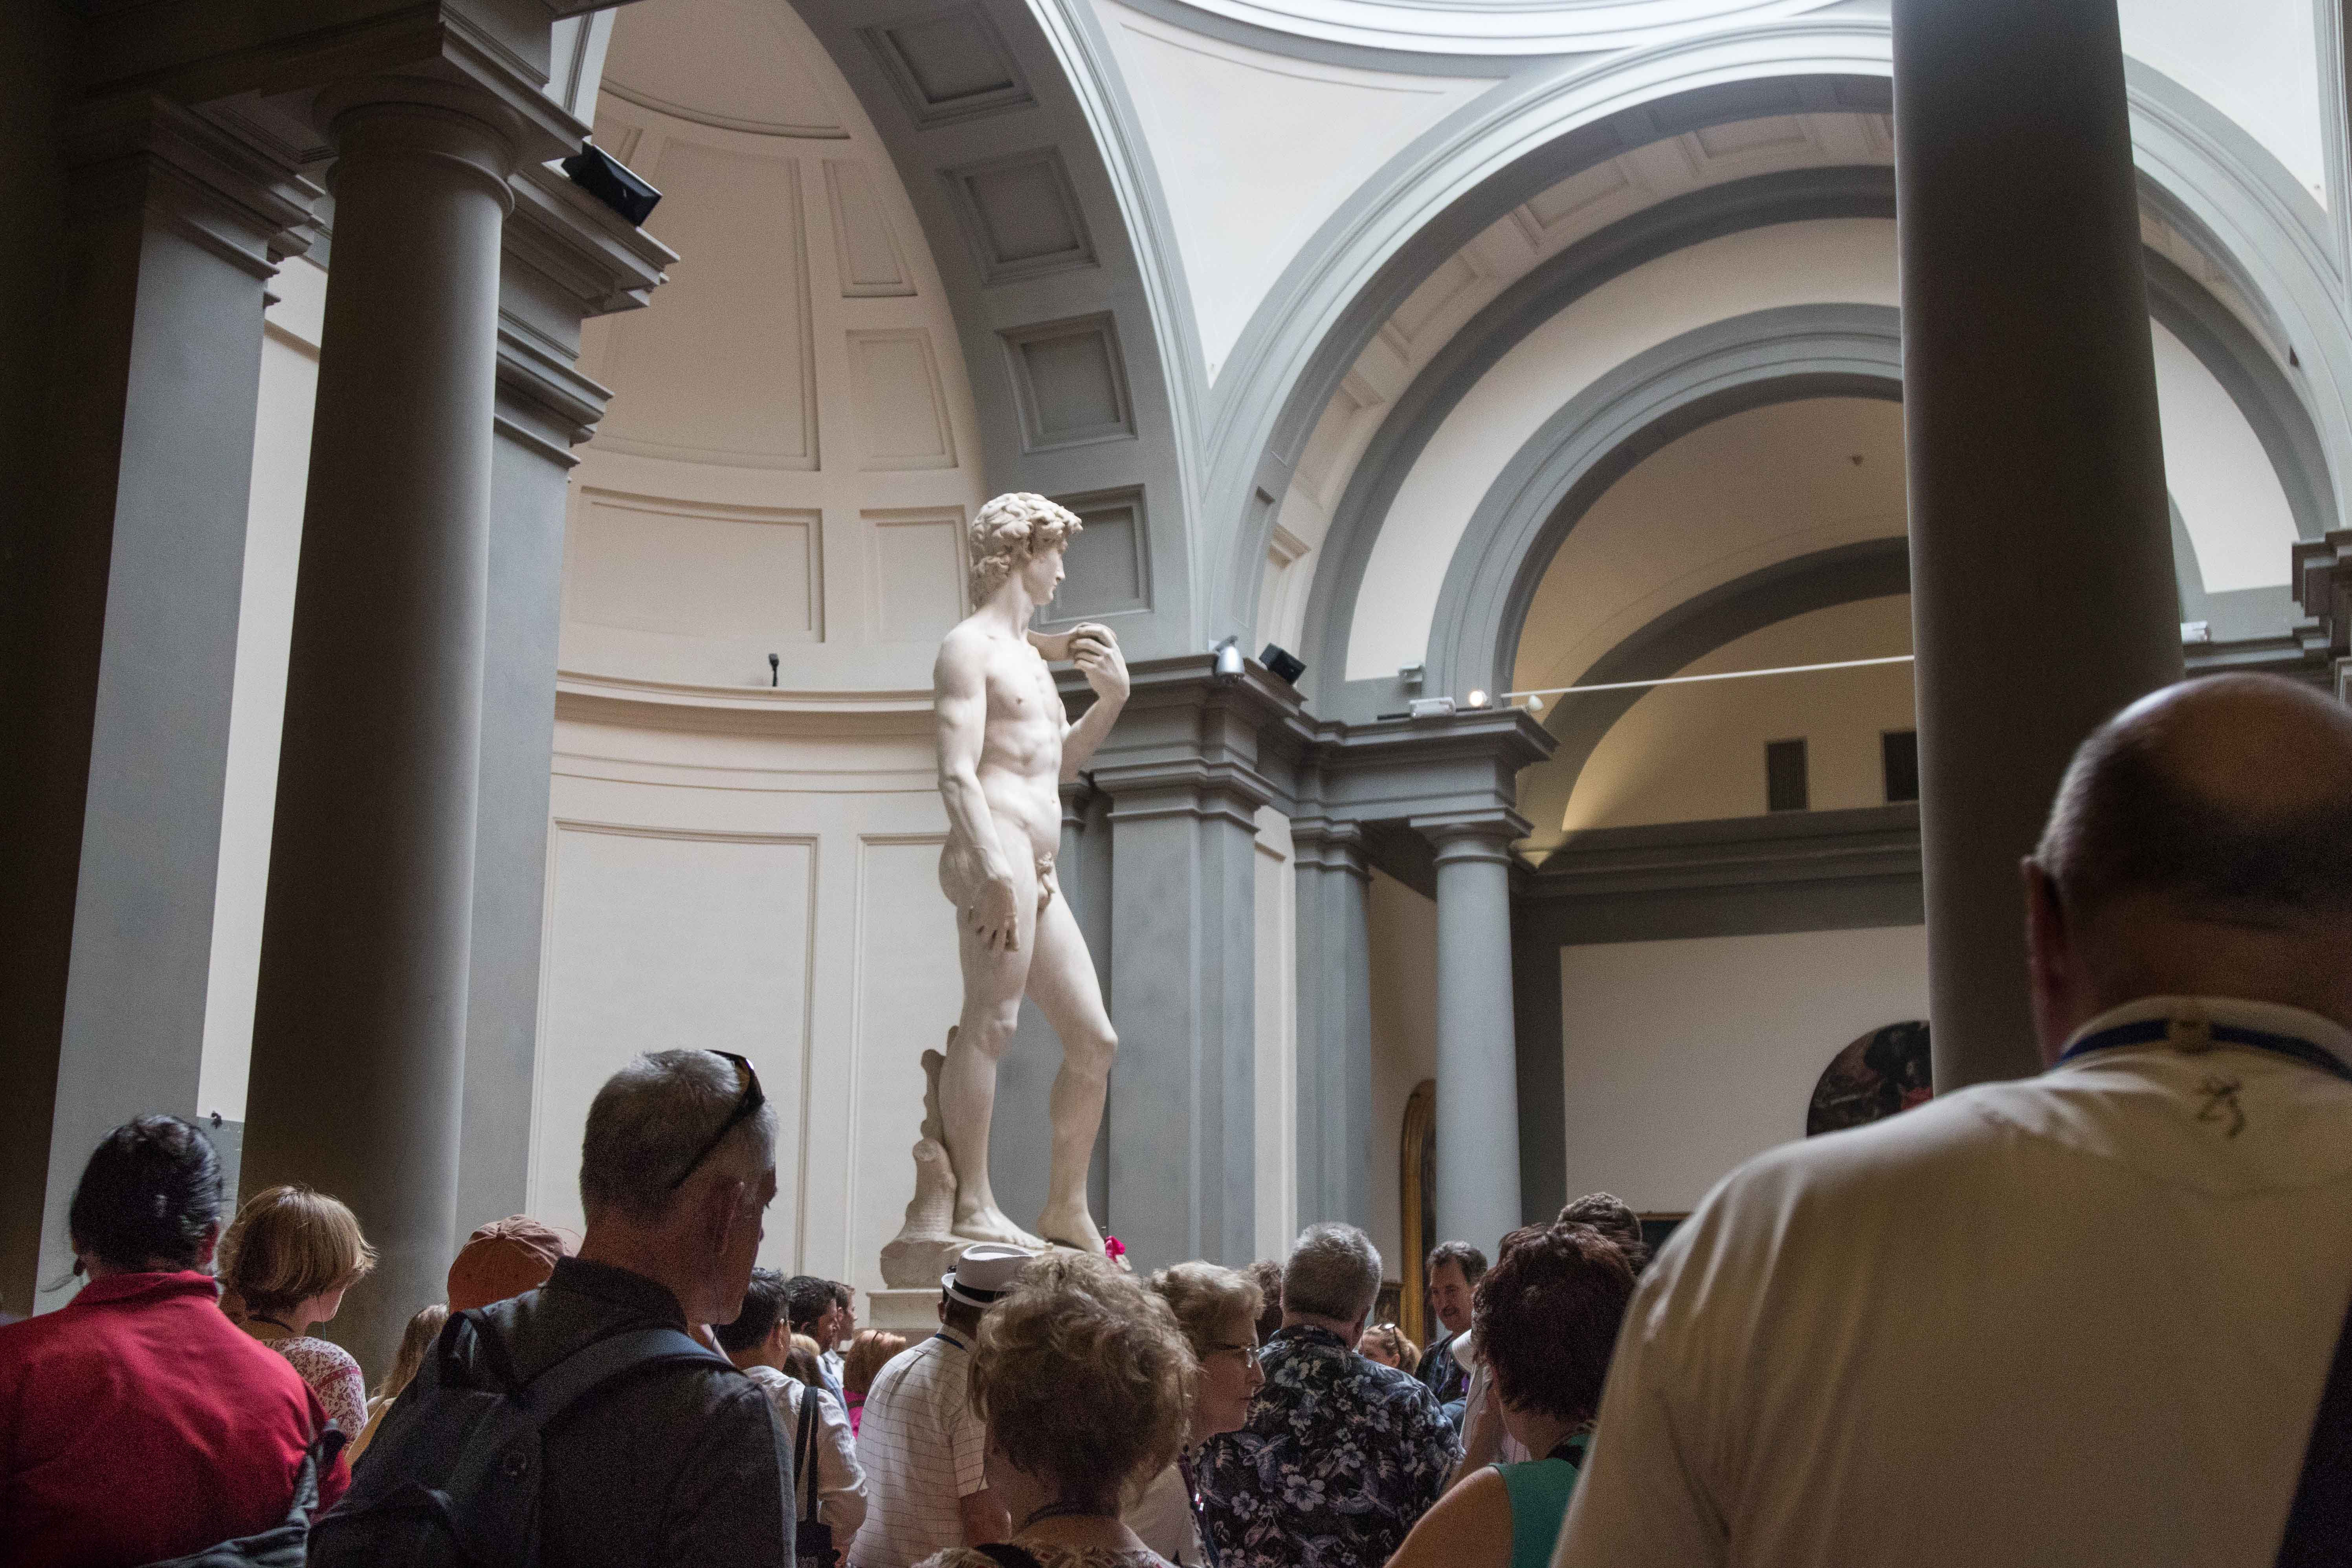 Mediterranean Cruise: Florence - Accademia Gallery | https://www.roseclearfield.com